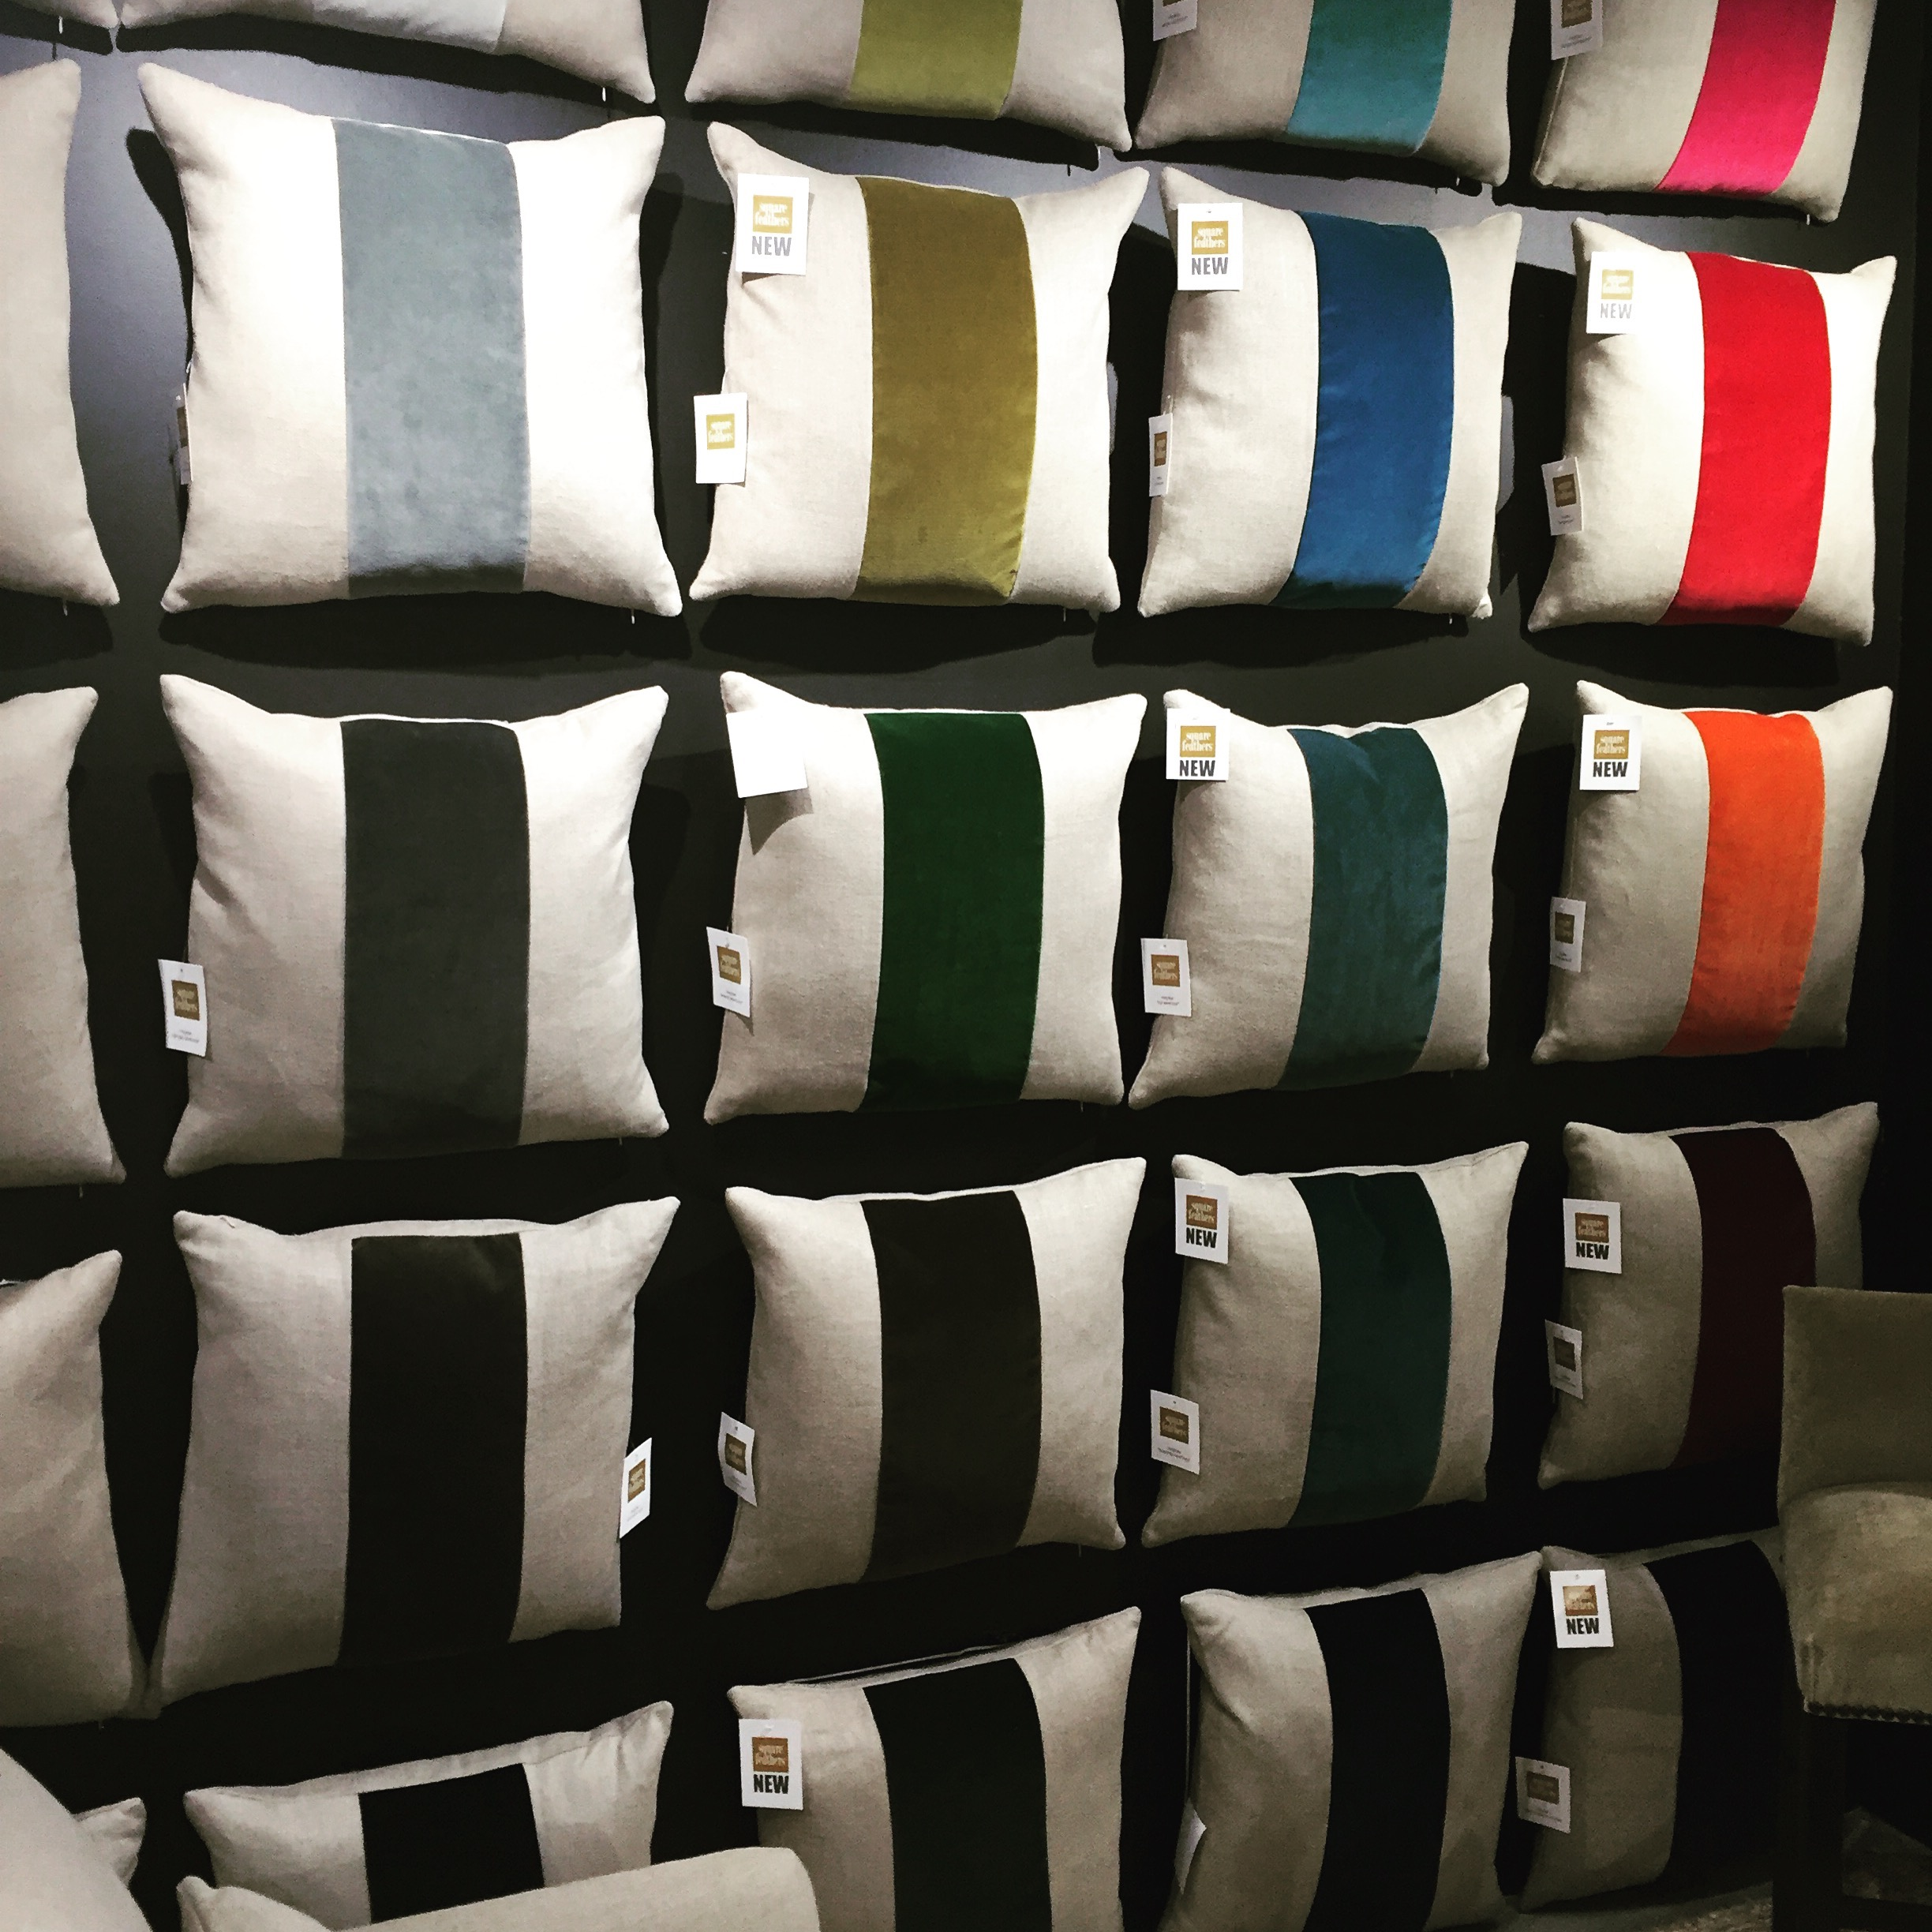 Square Feathers Pillows.jpg